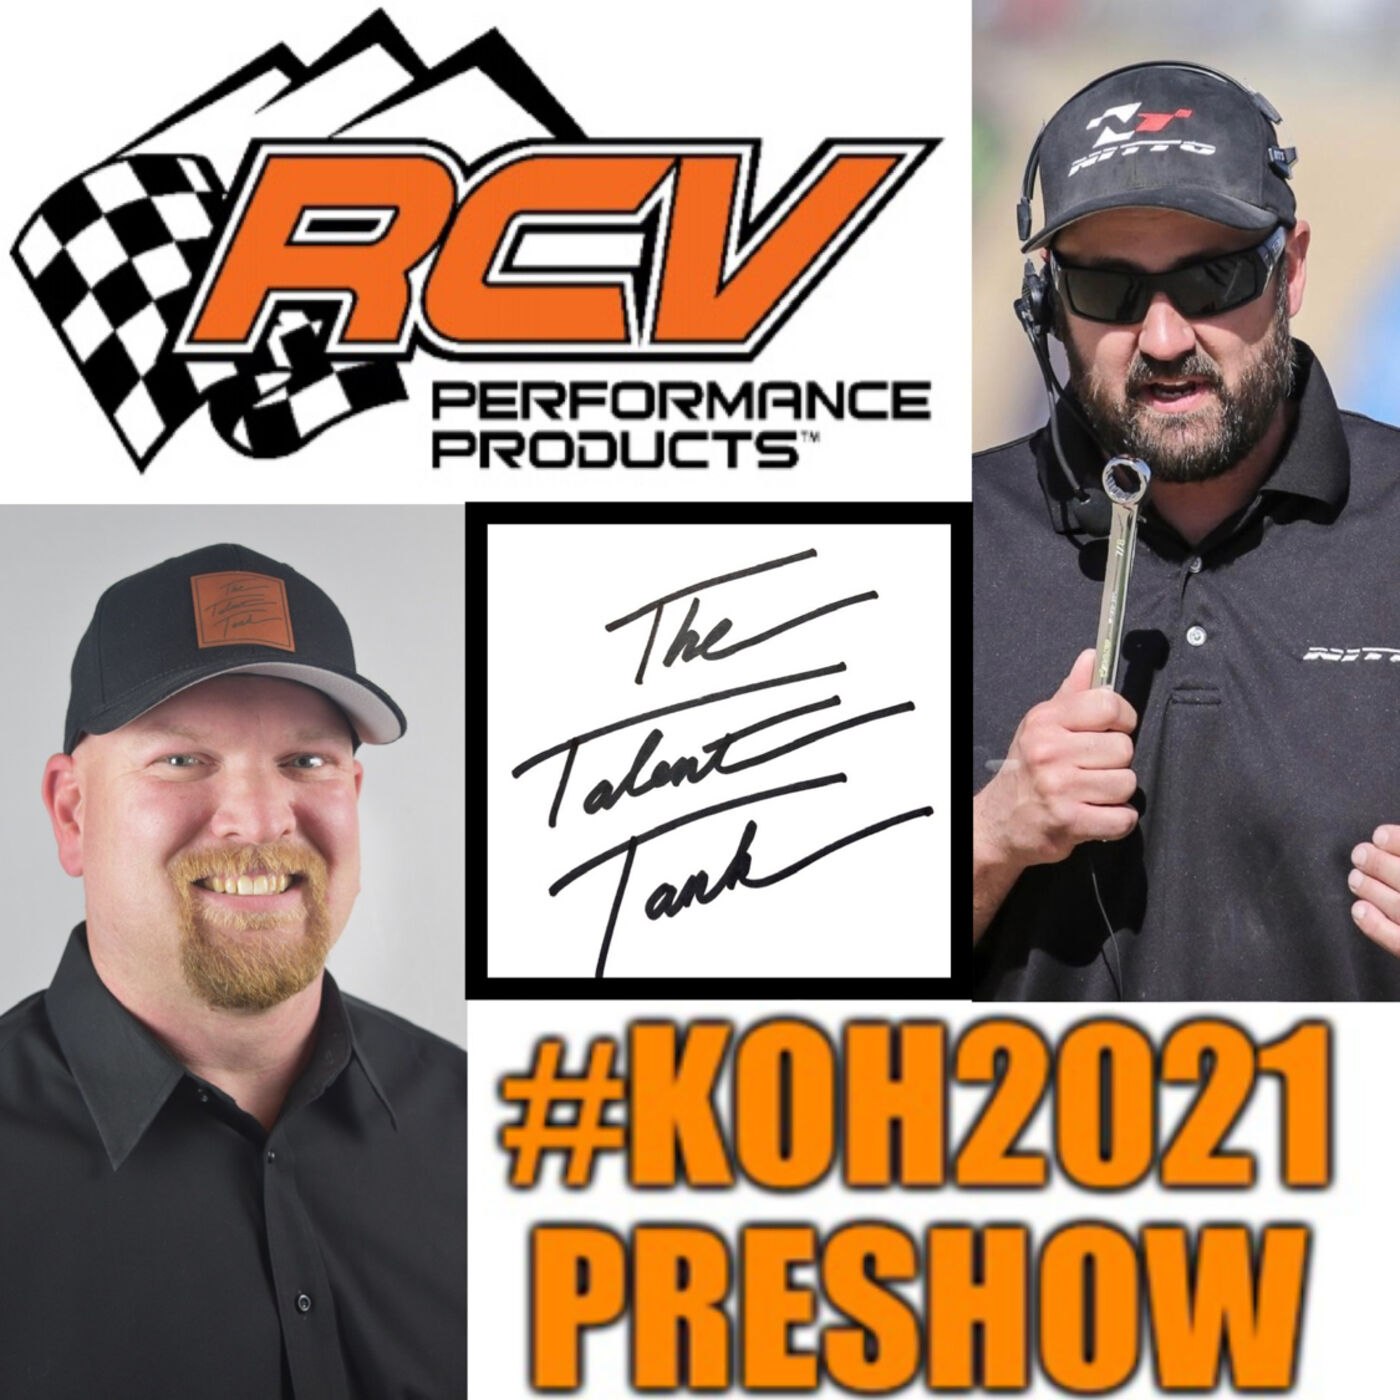 SP 13 RCV Performance #KOH2021 PreShow